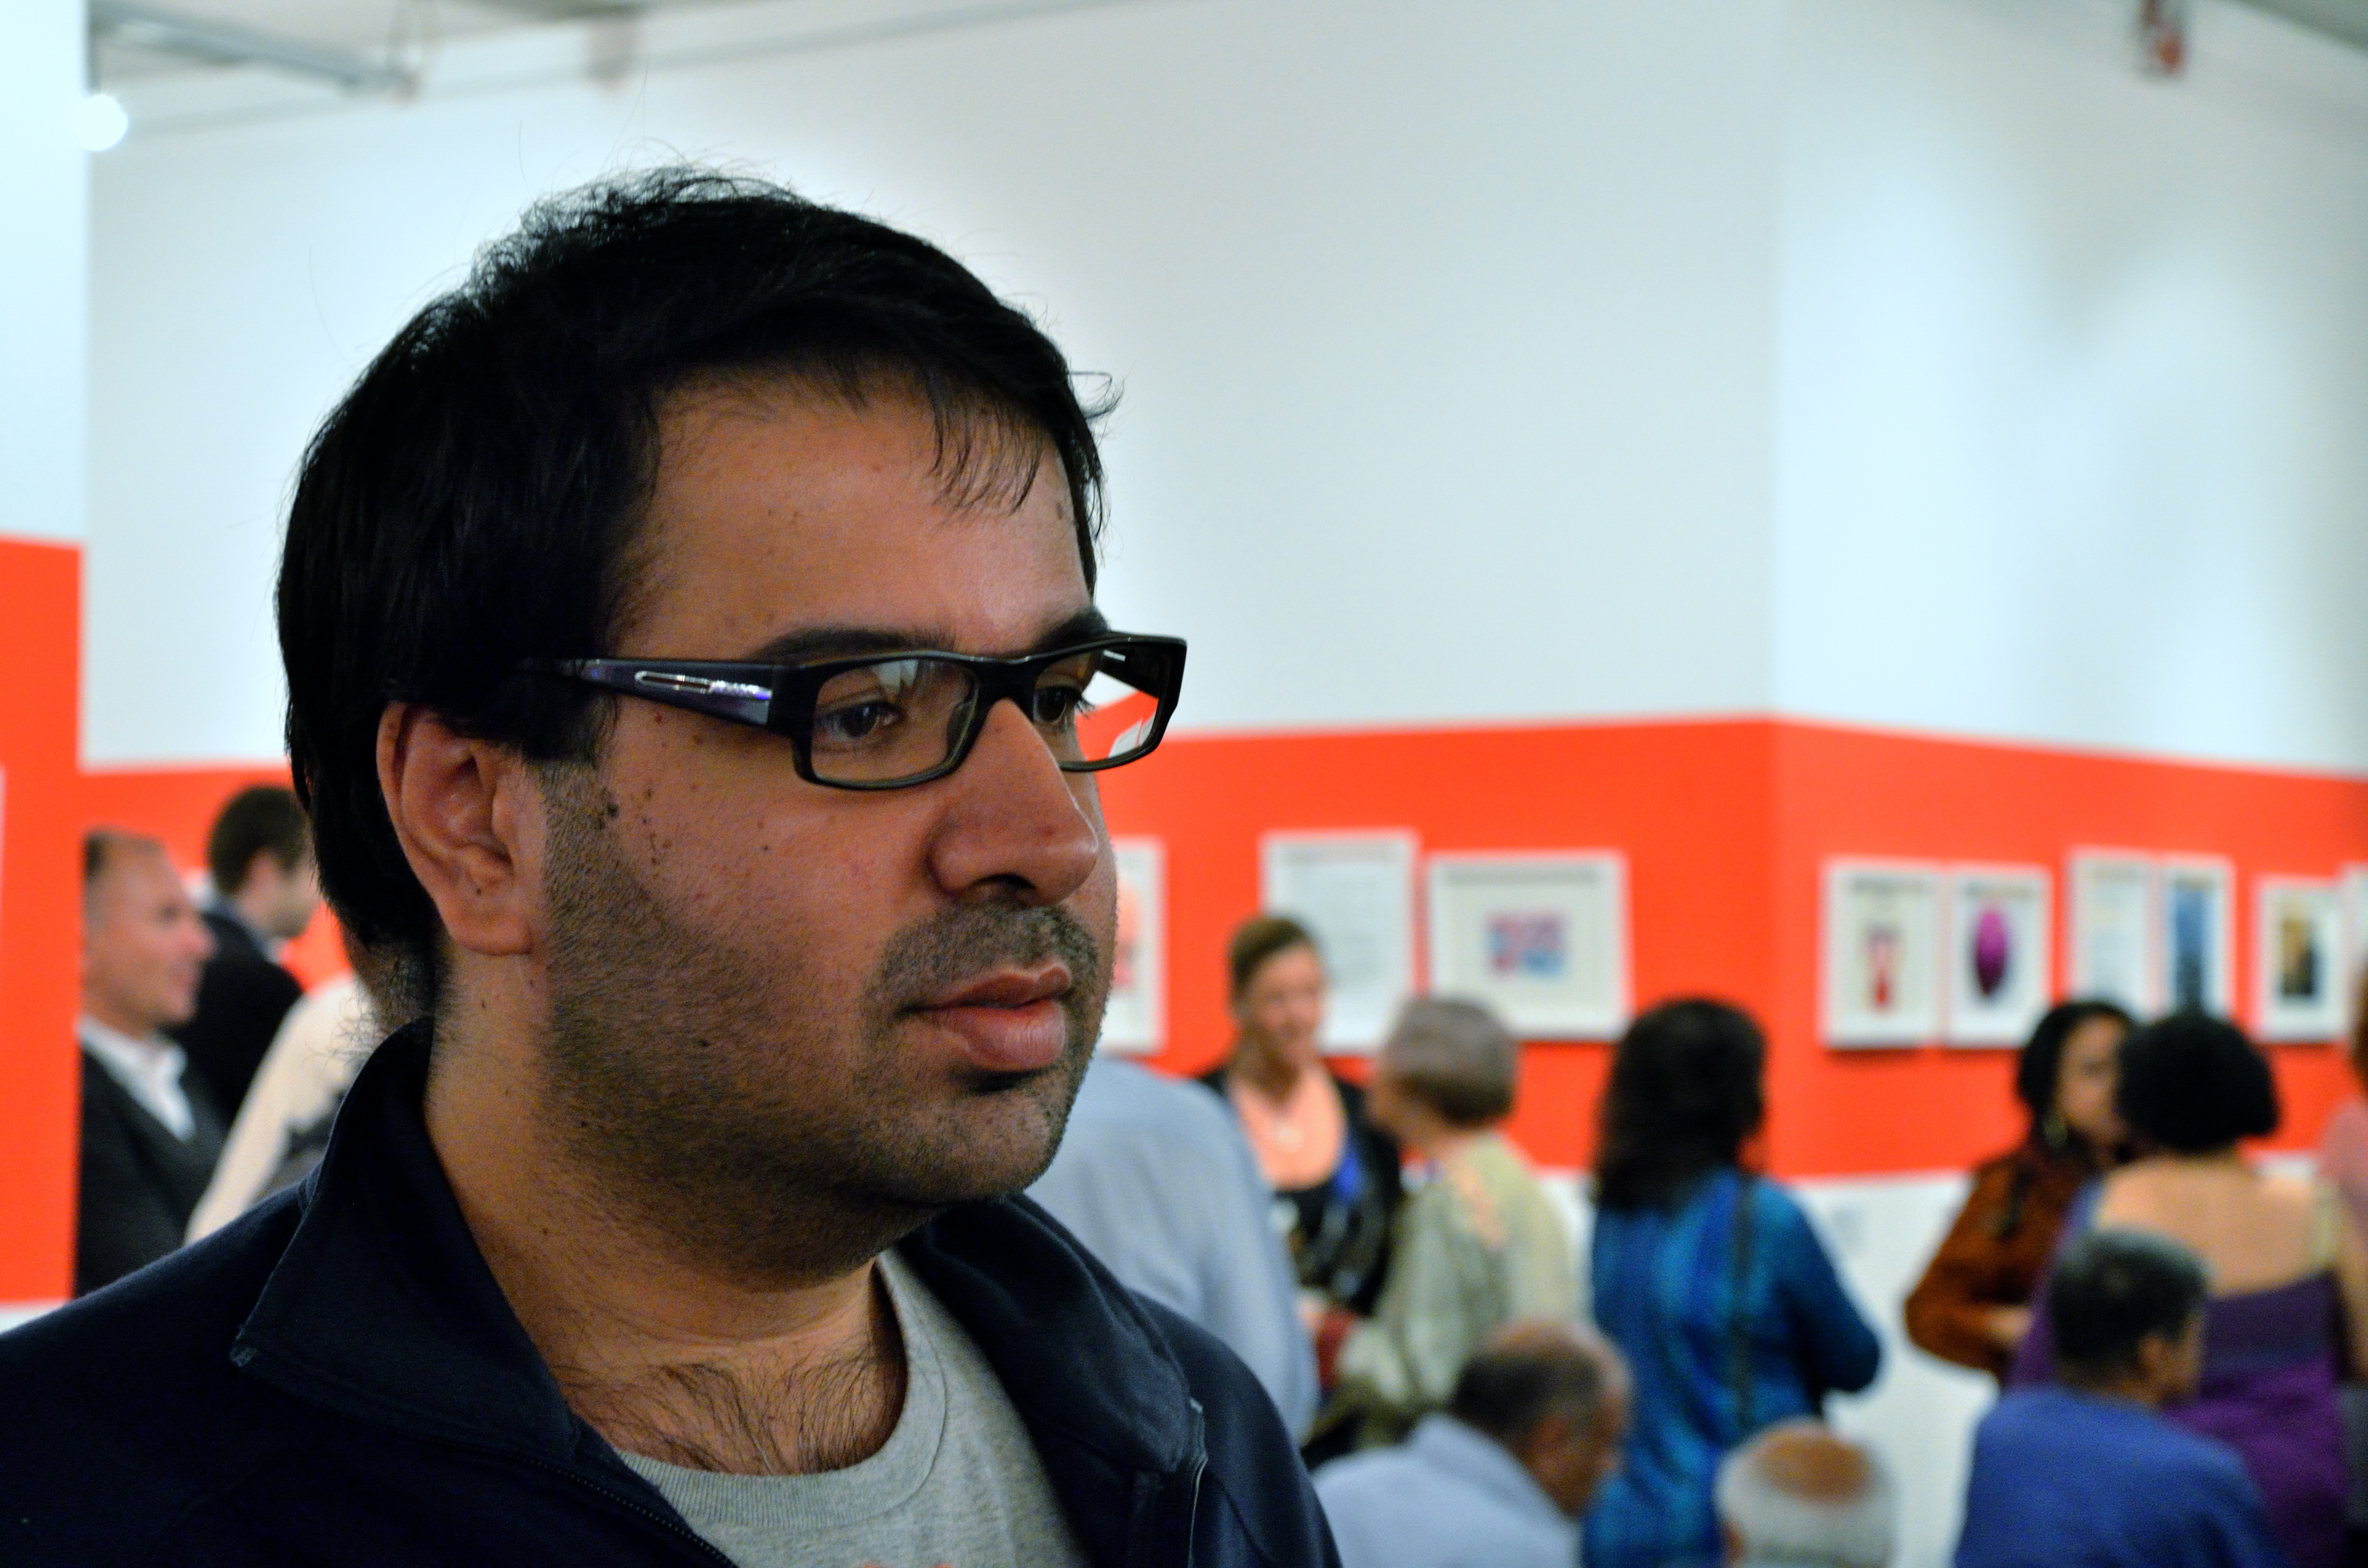 Ishan Khosla—Indian designer, design teacher and advocate for for protecting India's rich design traditions